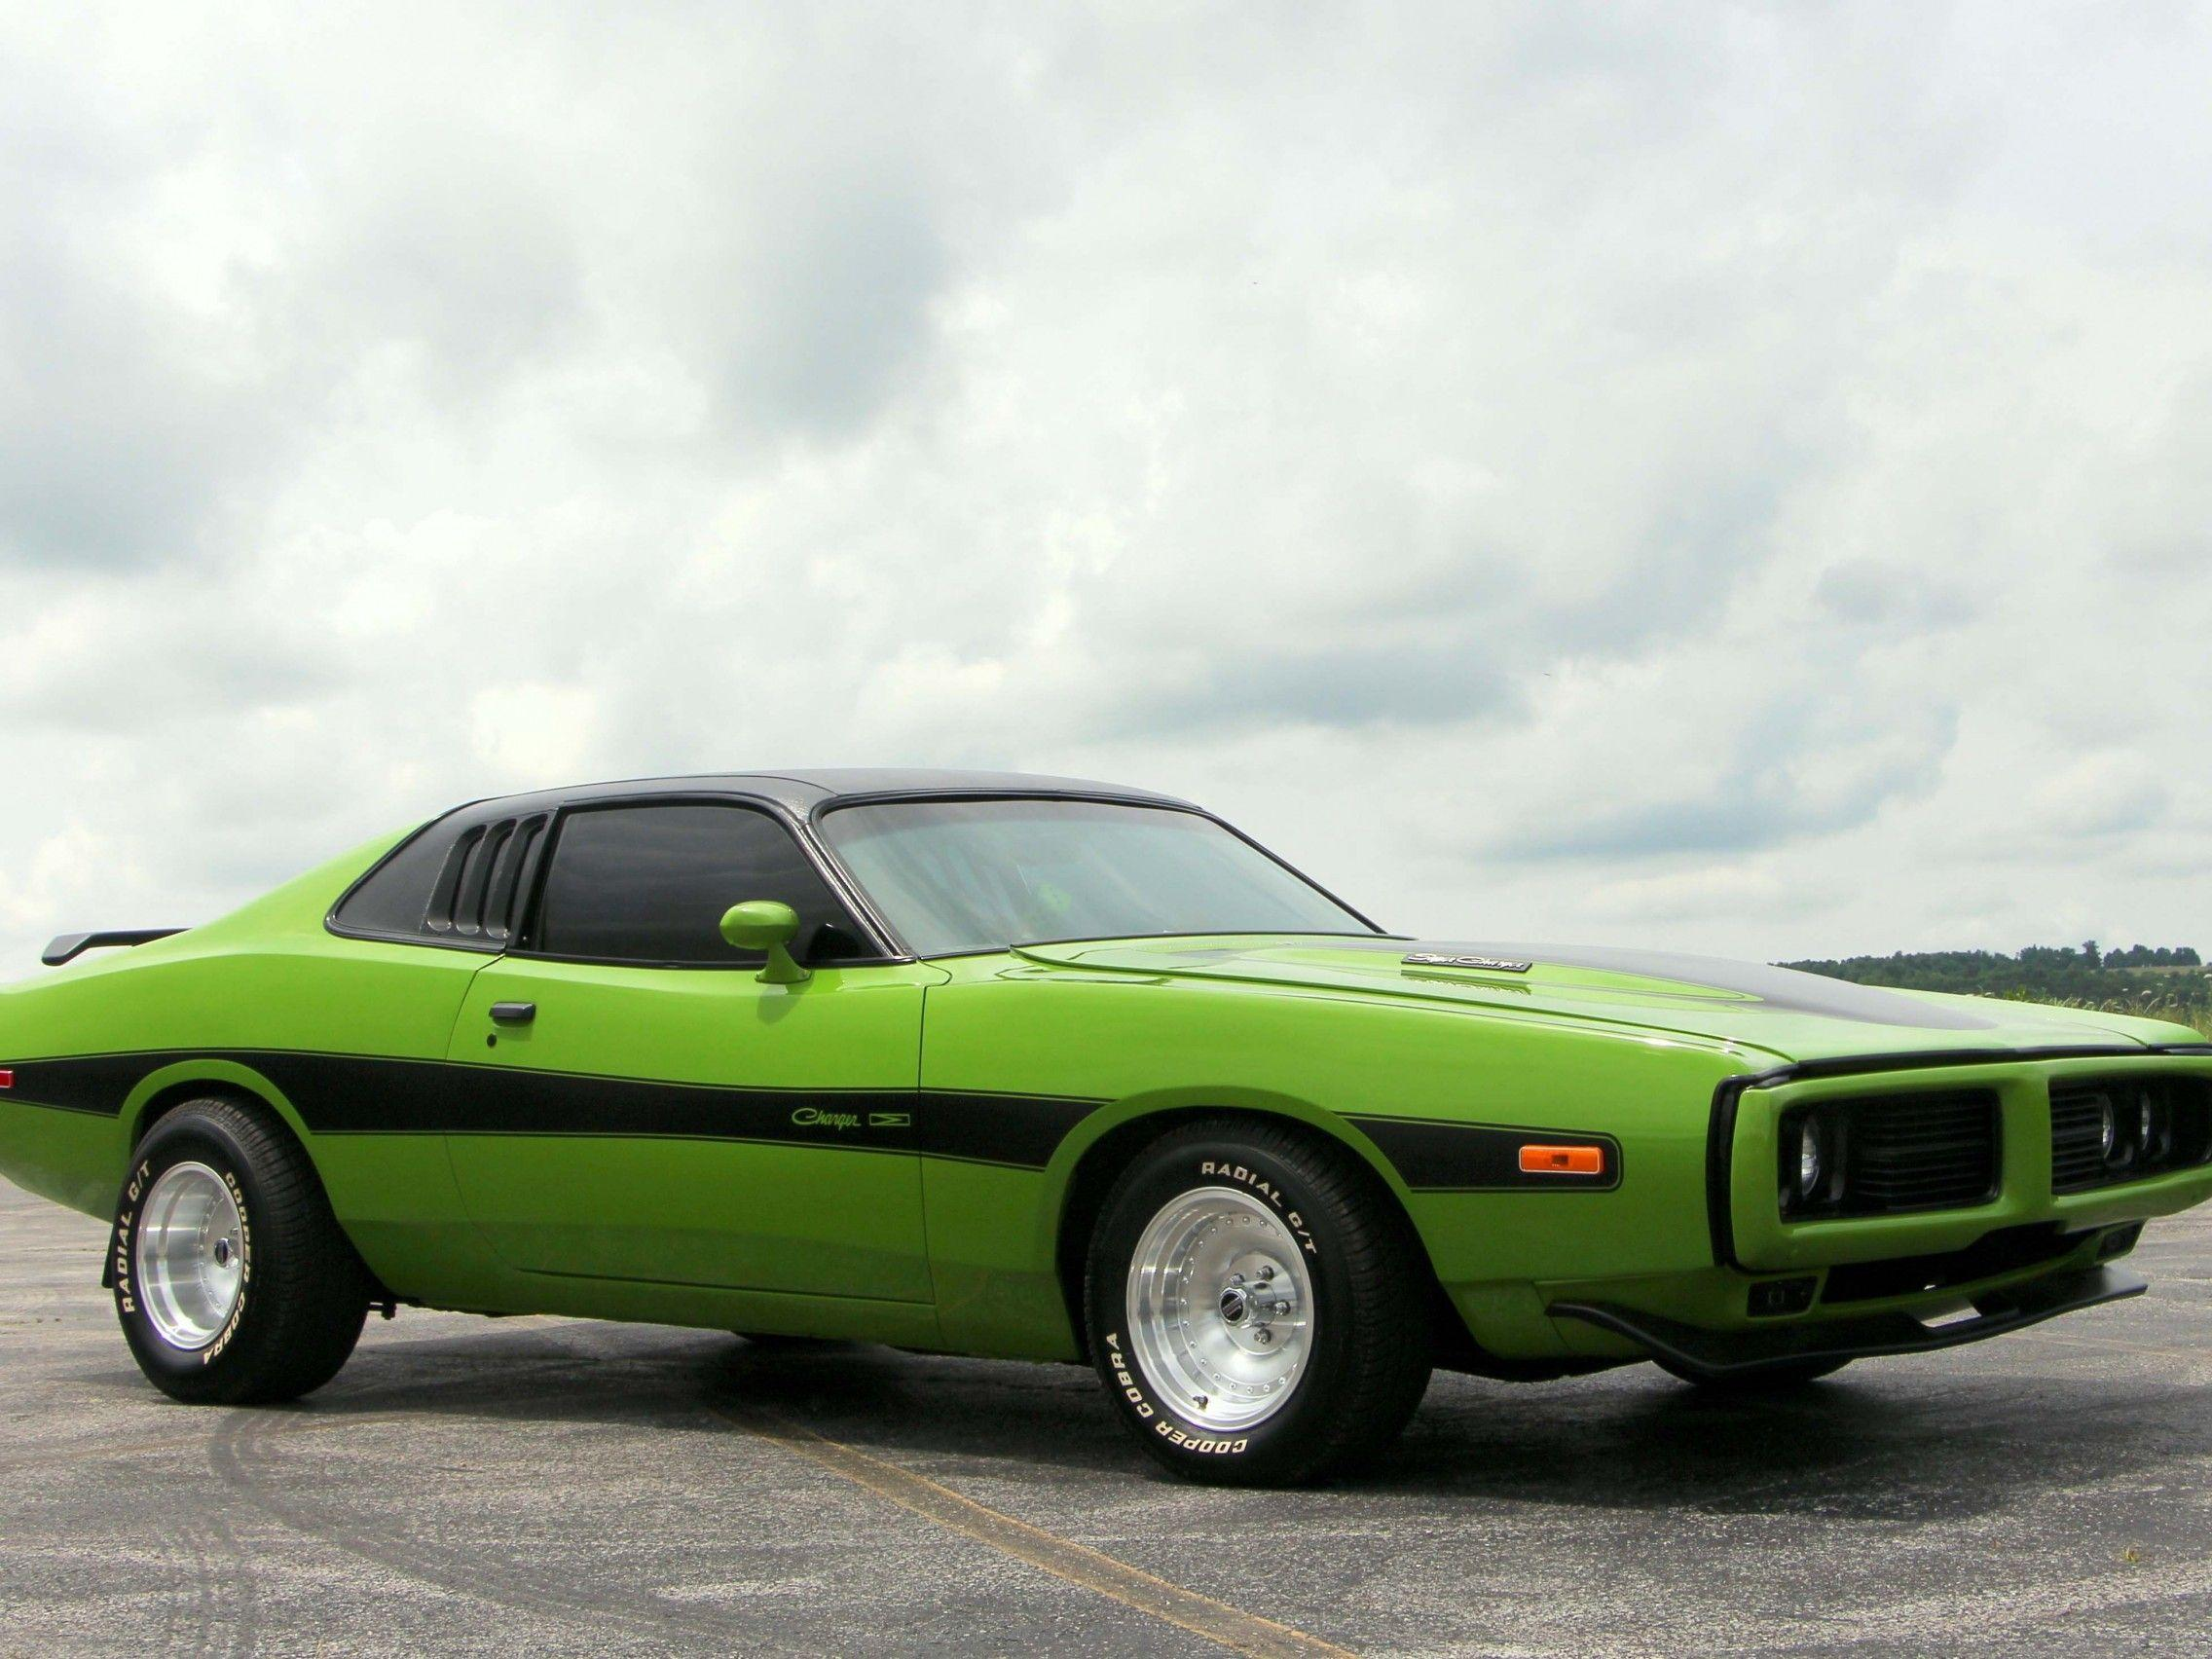 Download 2272x1704 Dodge Charger 1974, Green, Side View, Cars